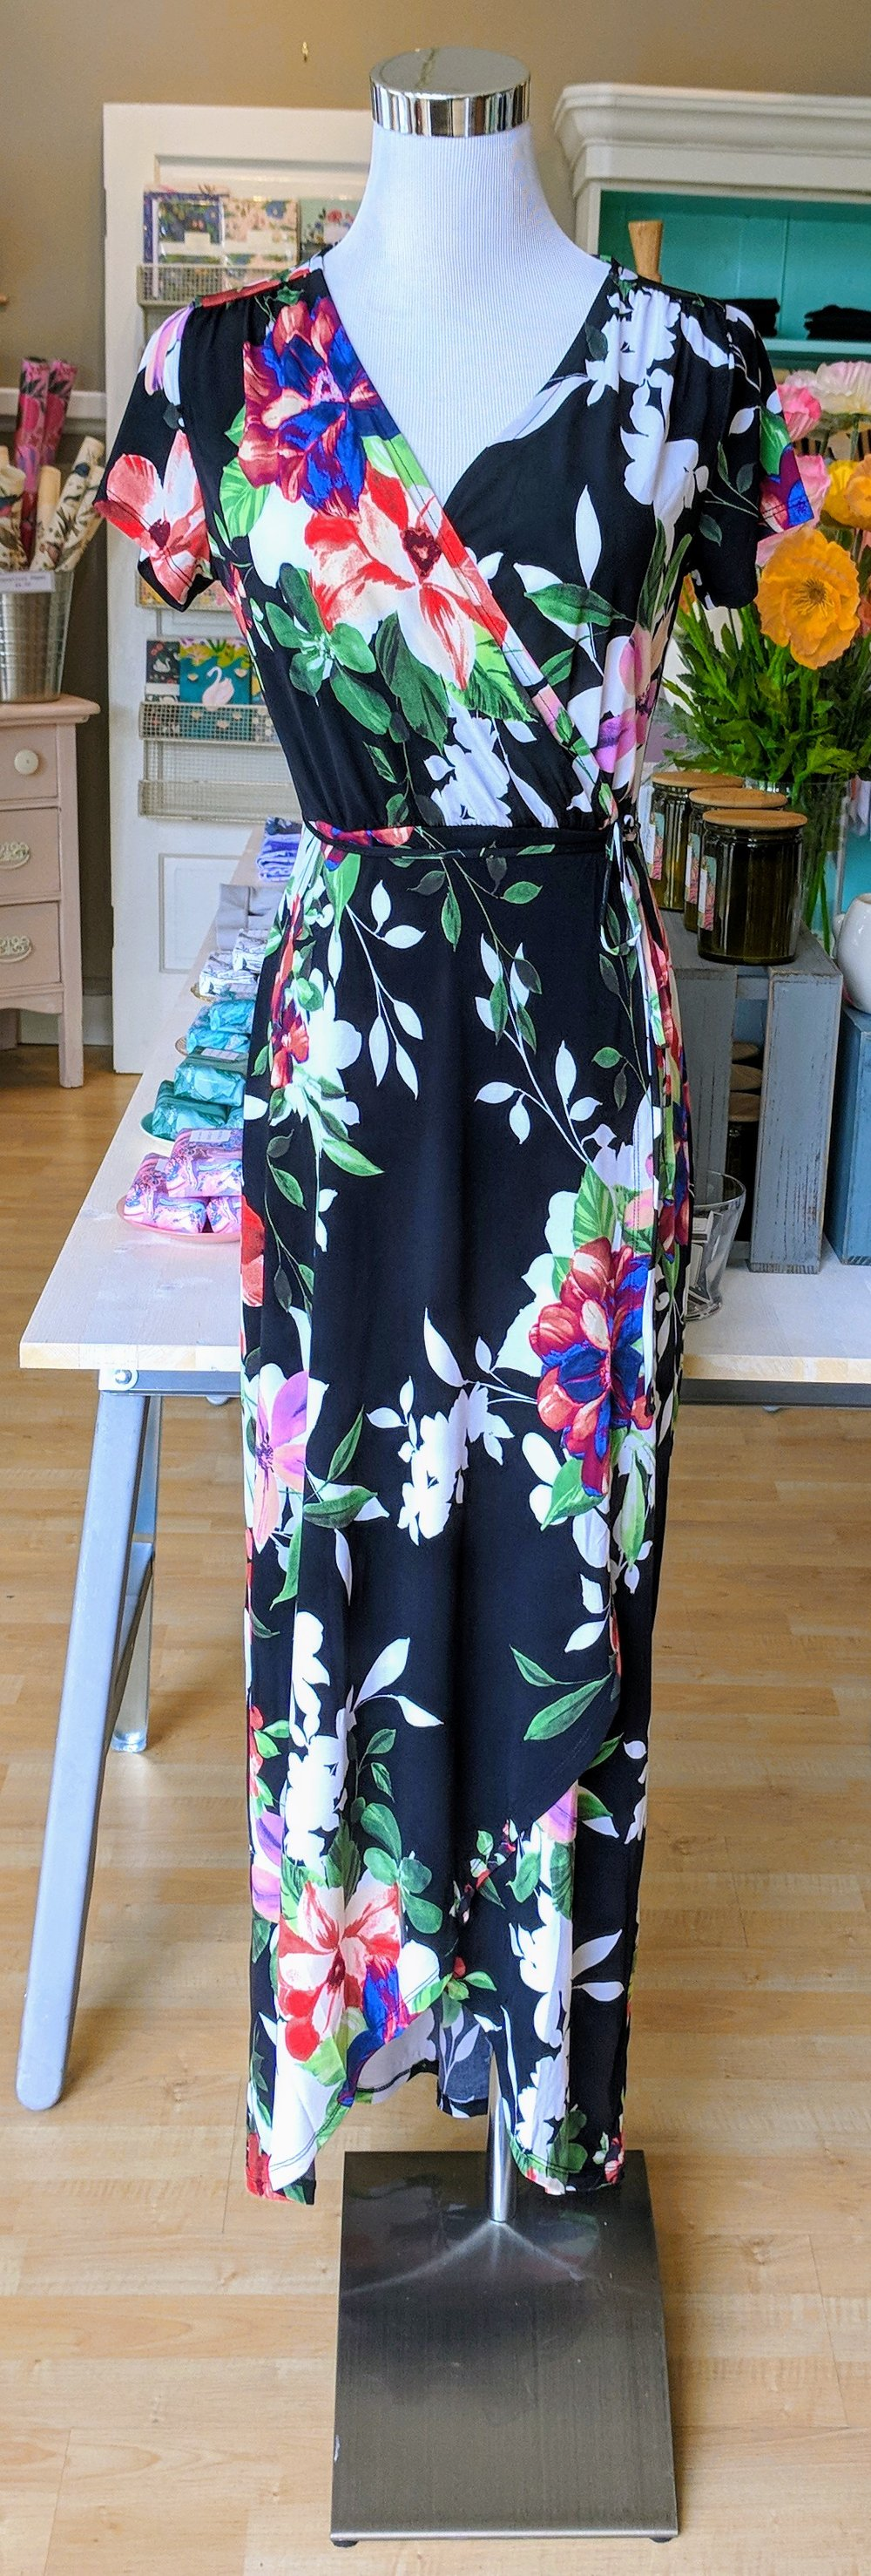 Black floral maxi dress with an overlapped waist.